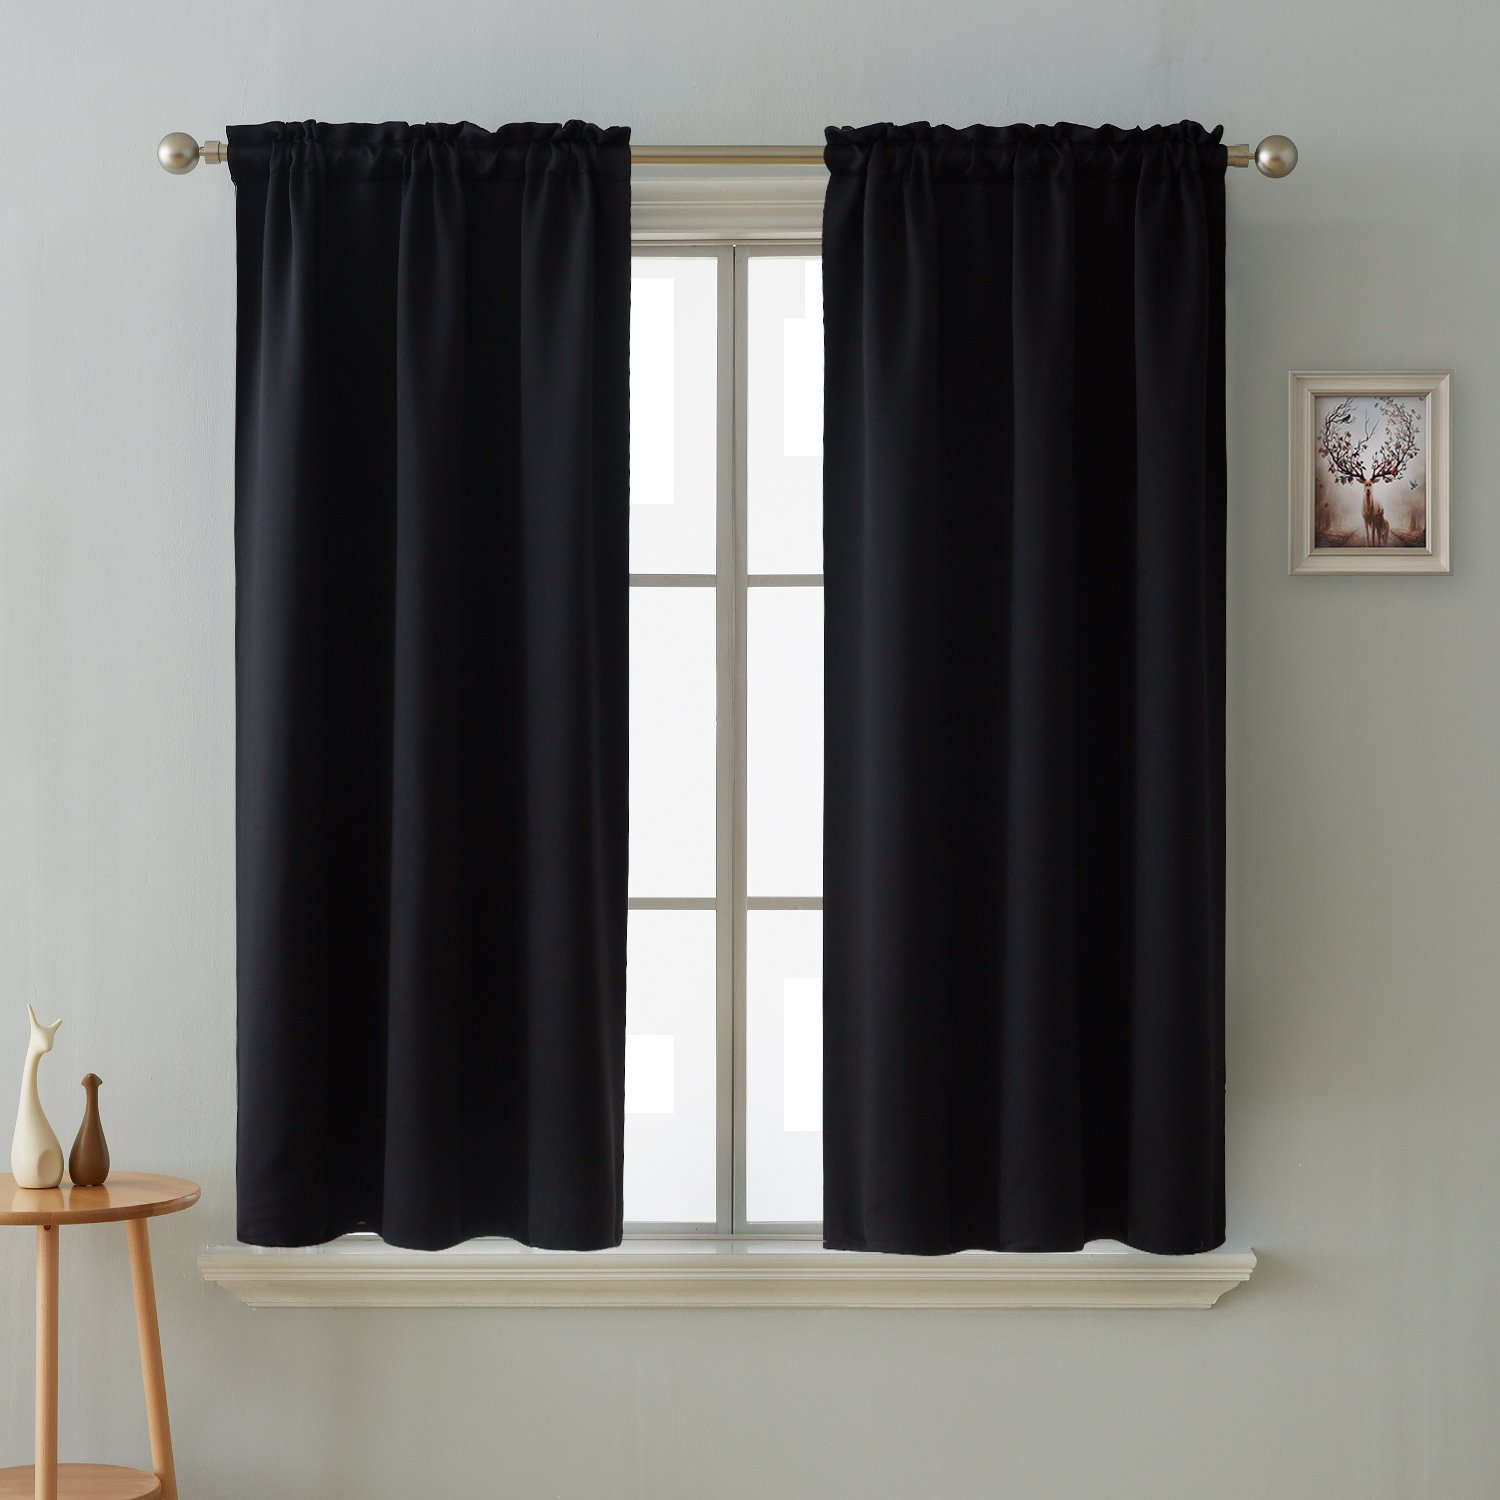 Amazon.com: Deconovo Room Darkening Curtain Thermal Insulated Blackout  Curtains For Kids Room Black 38 X 63 Inch 2 Panels: Home U0026 Kitchen